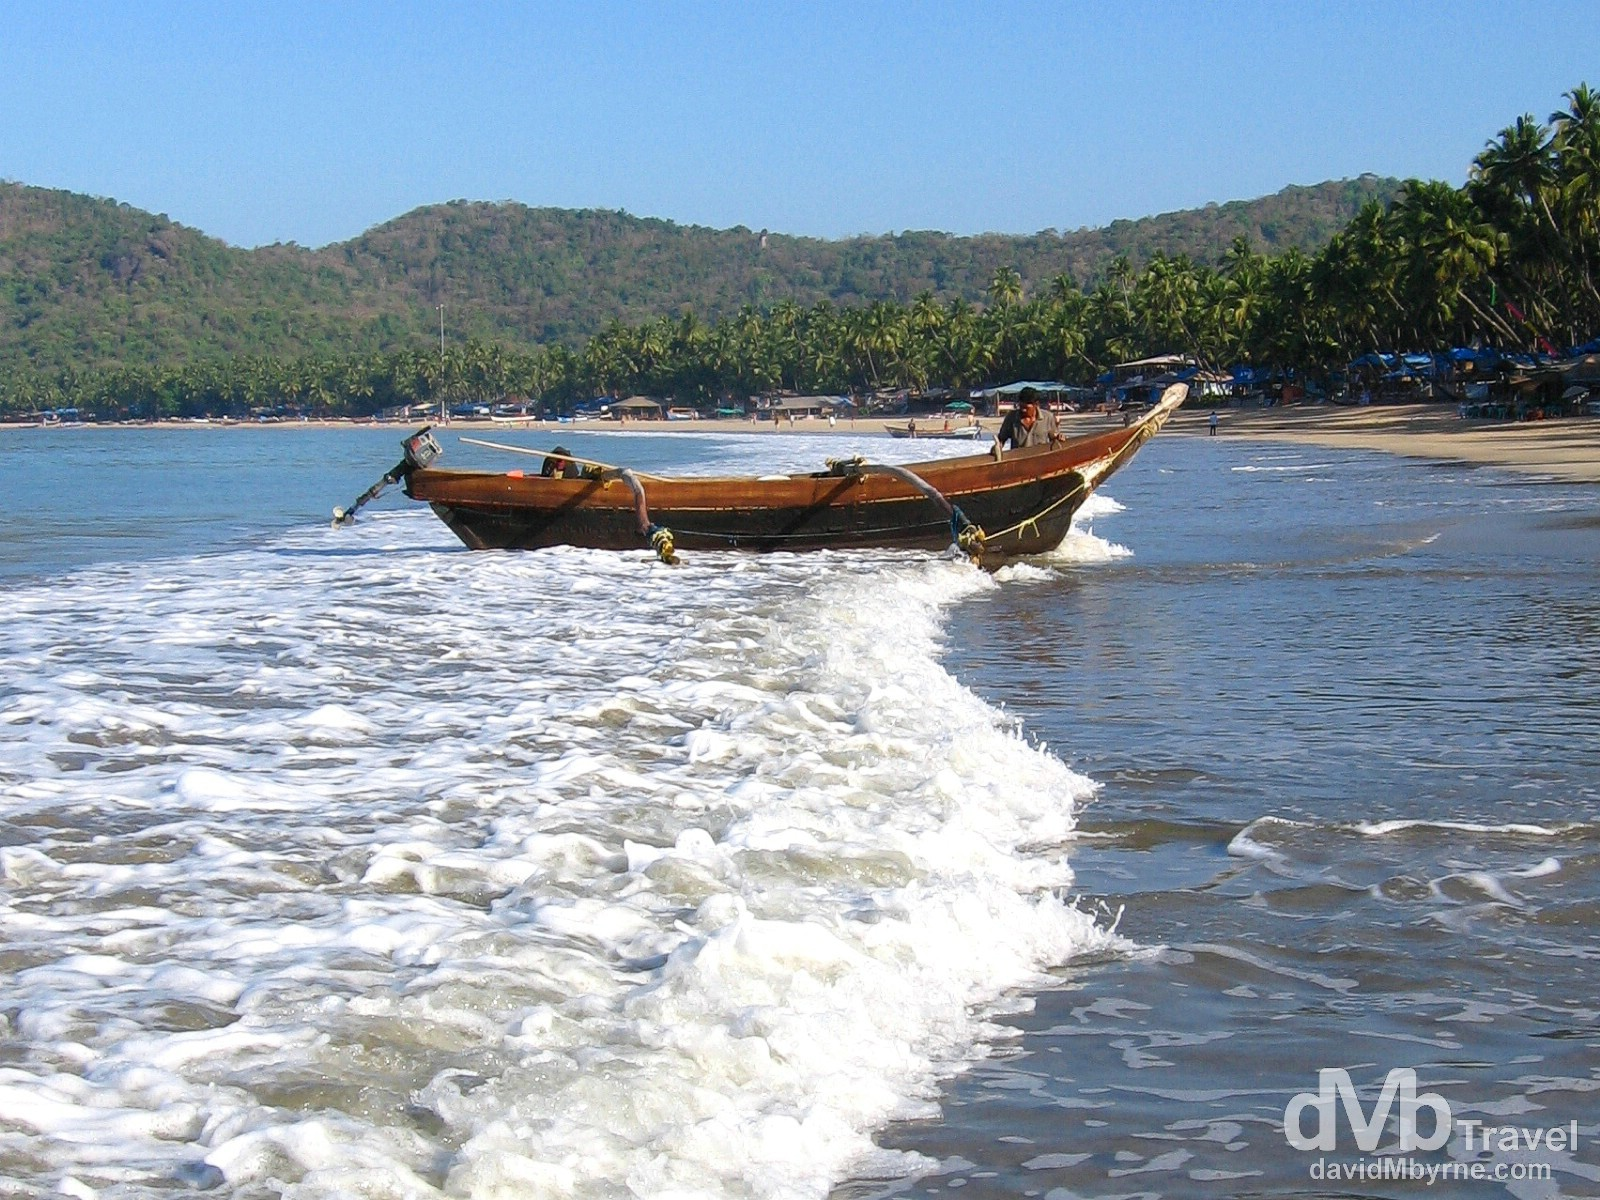 A fisherman bringing a boat ashore on Palolem Beach, Goa, India. April 1, 2008.